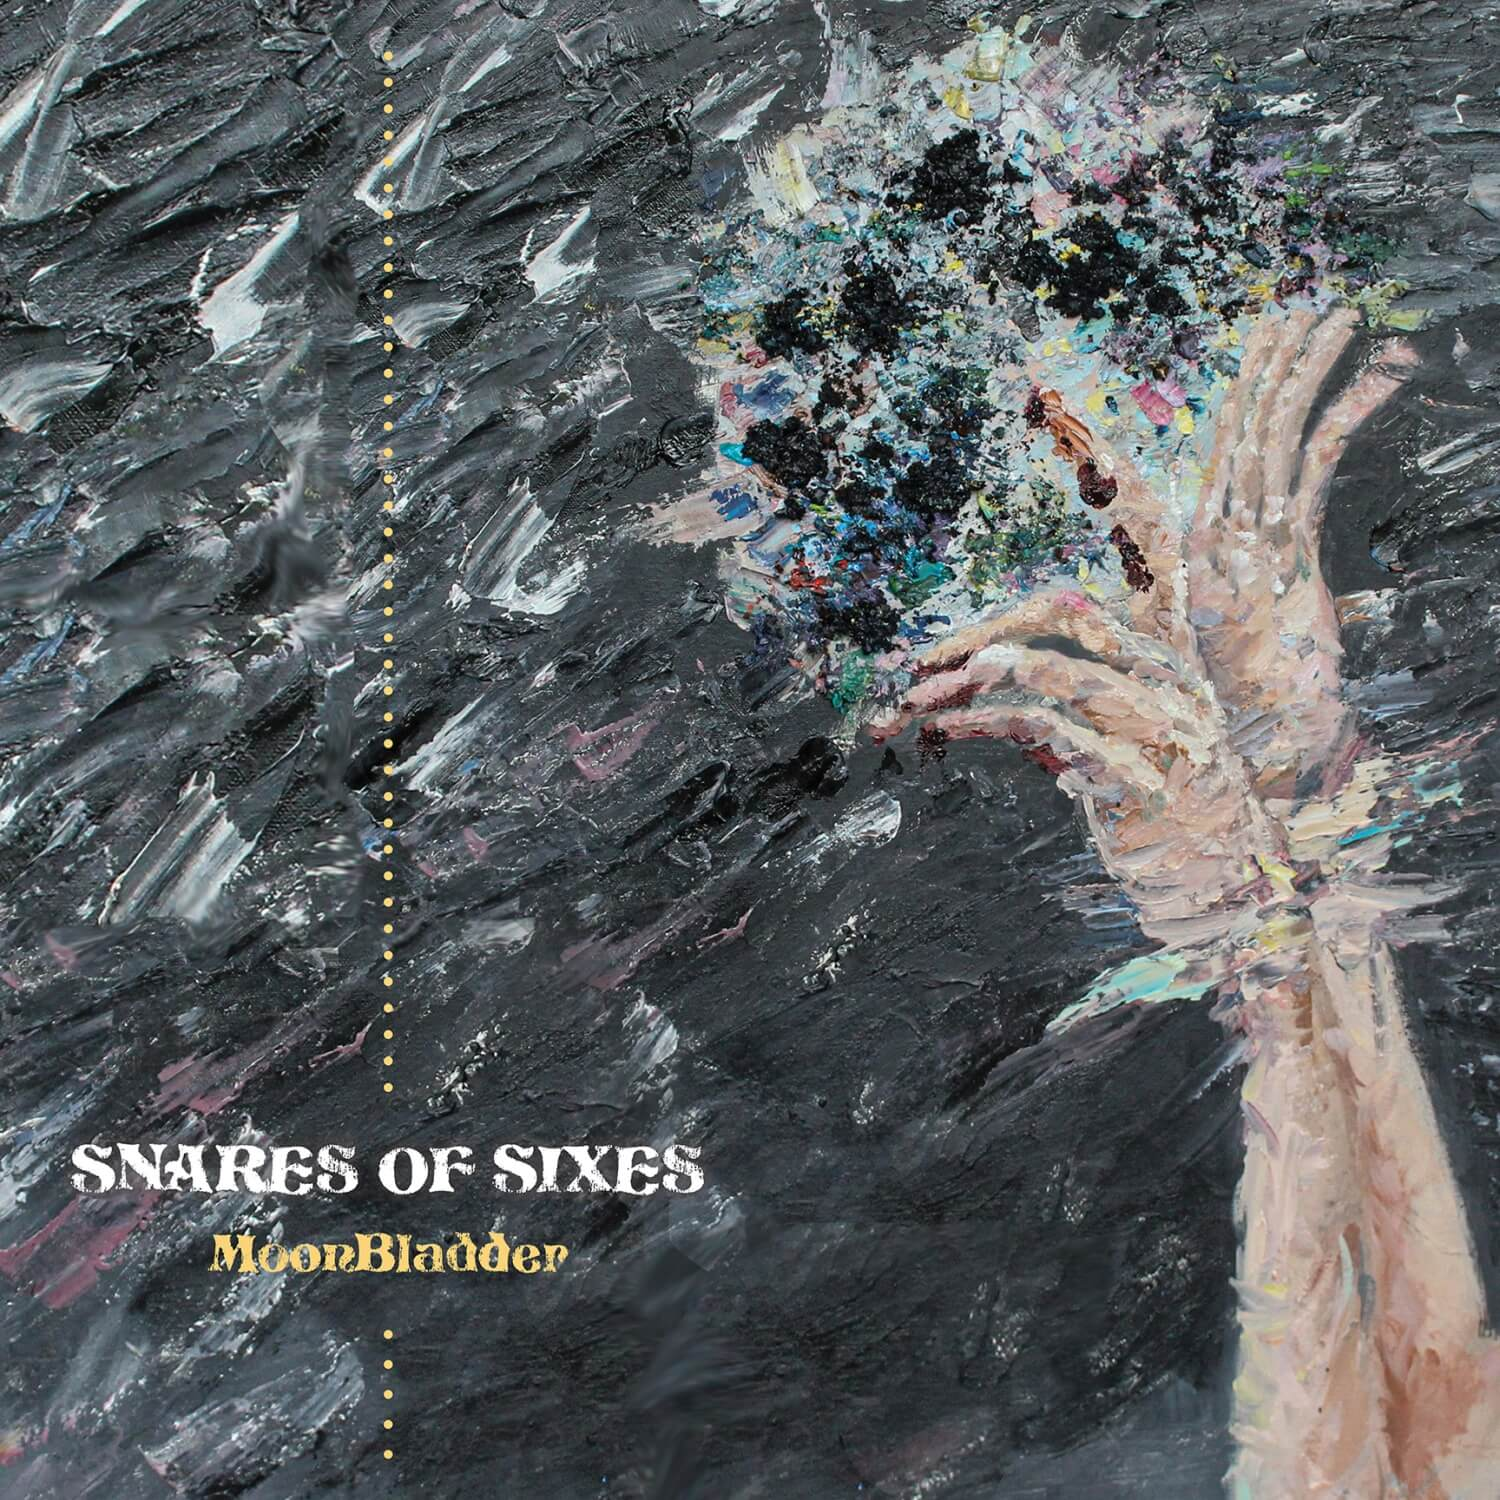 Snares of Sixes